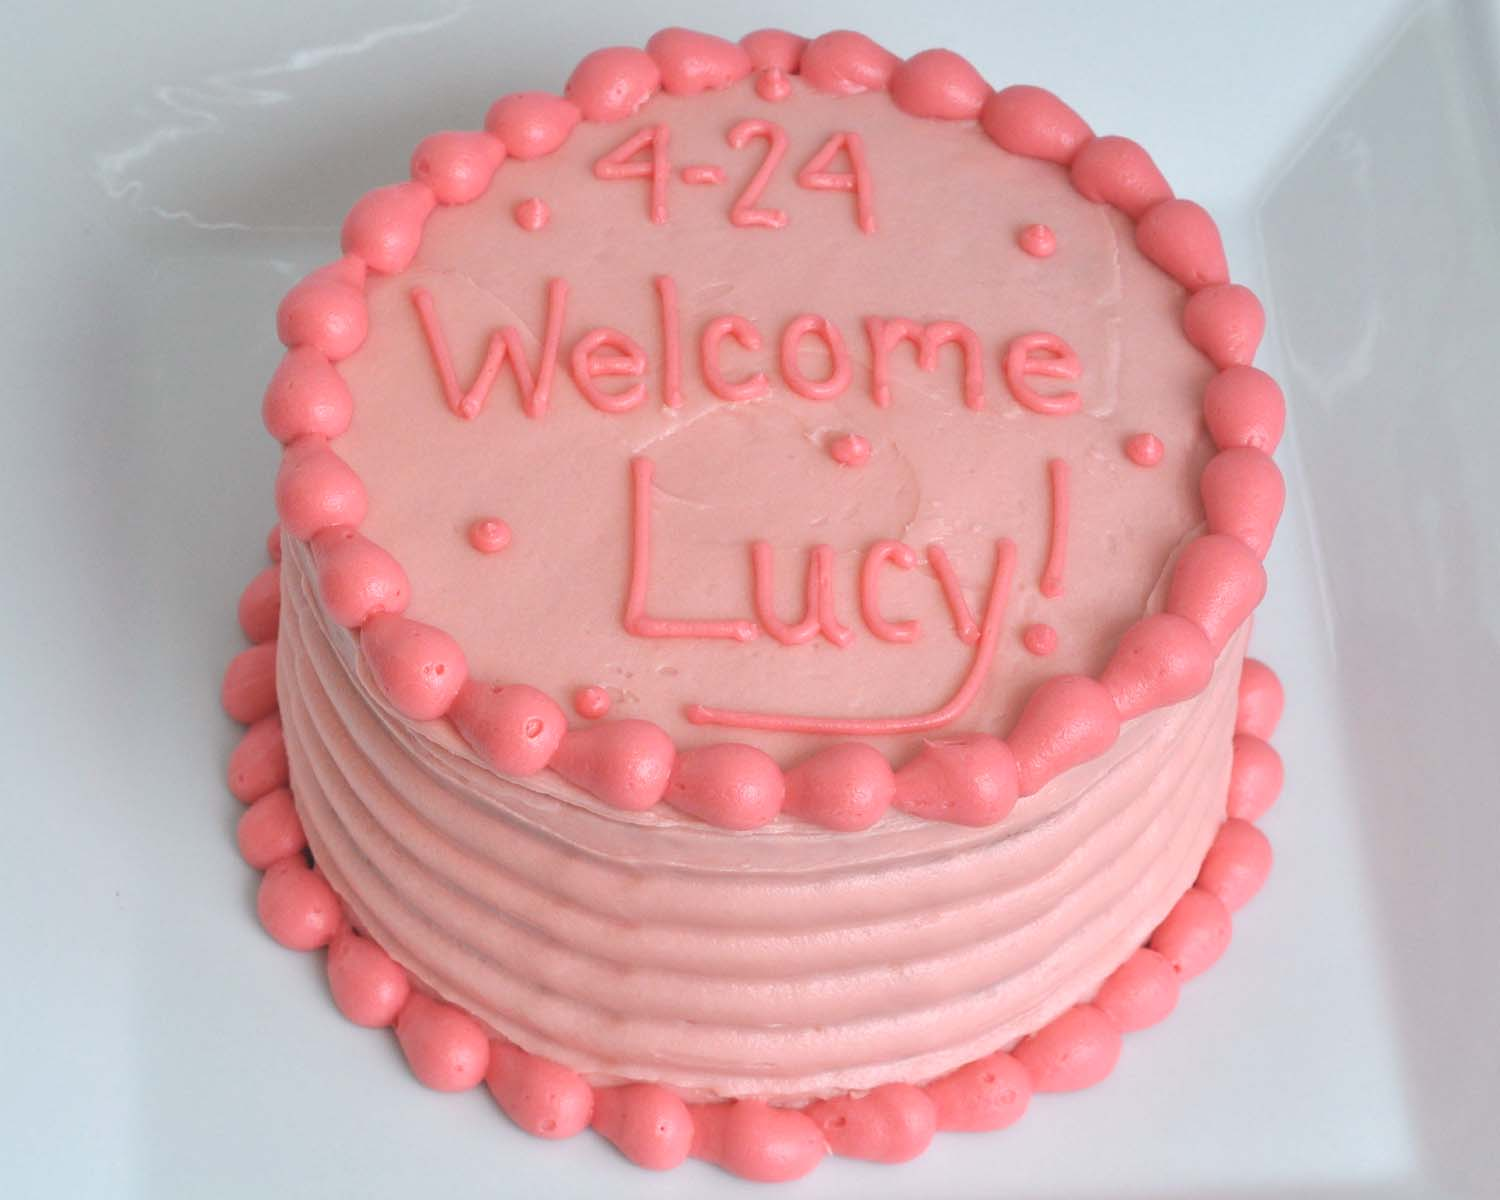 Beki cook 39 s cake blog easy pink strawberry cake for Baby cake decoration ideas